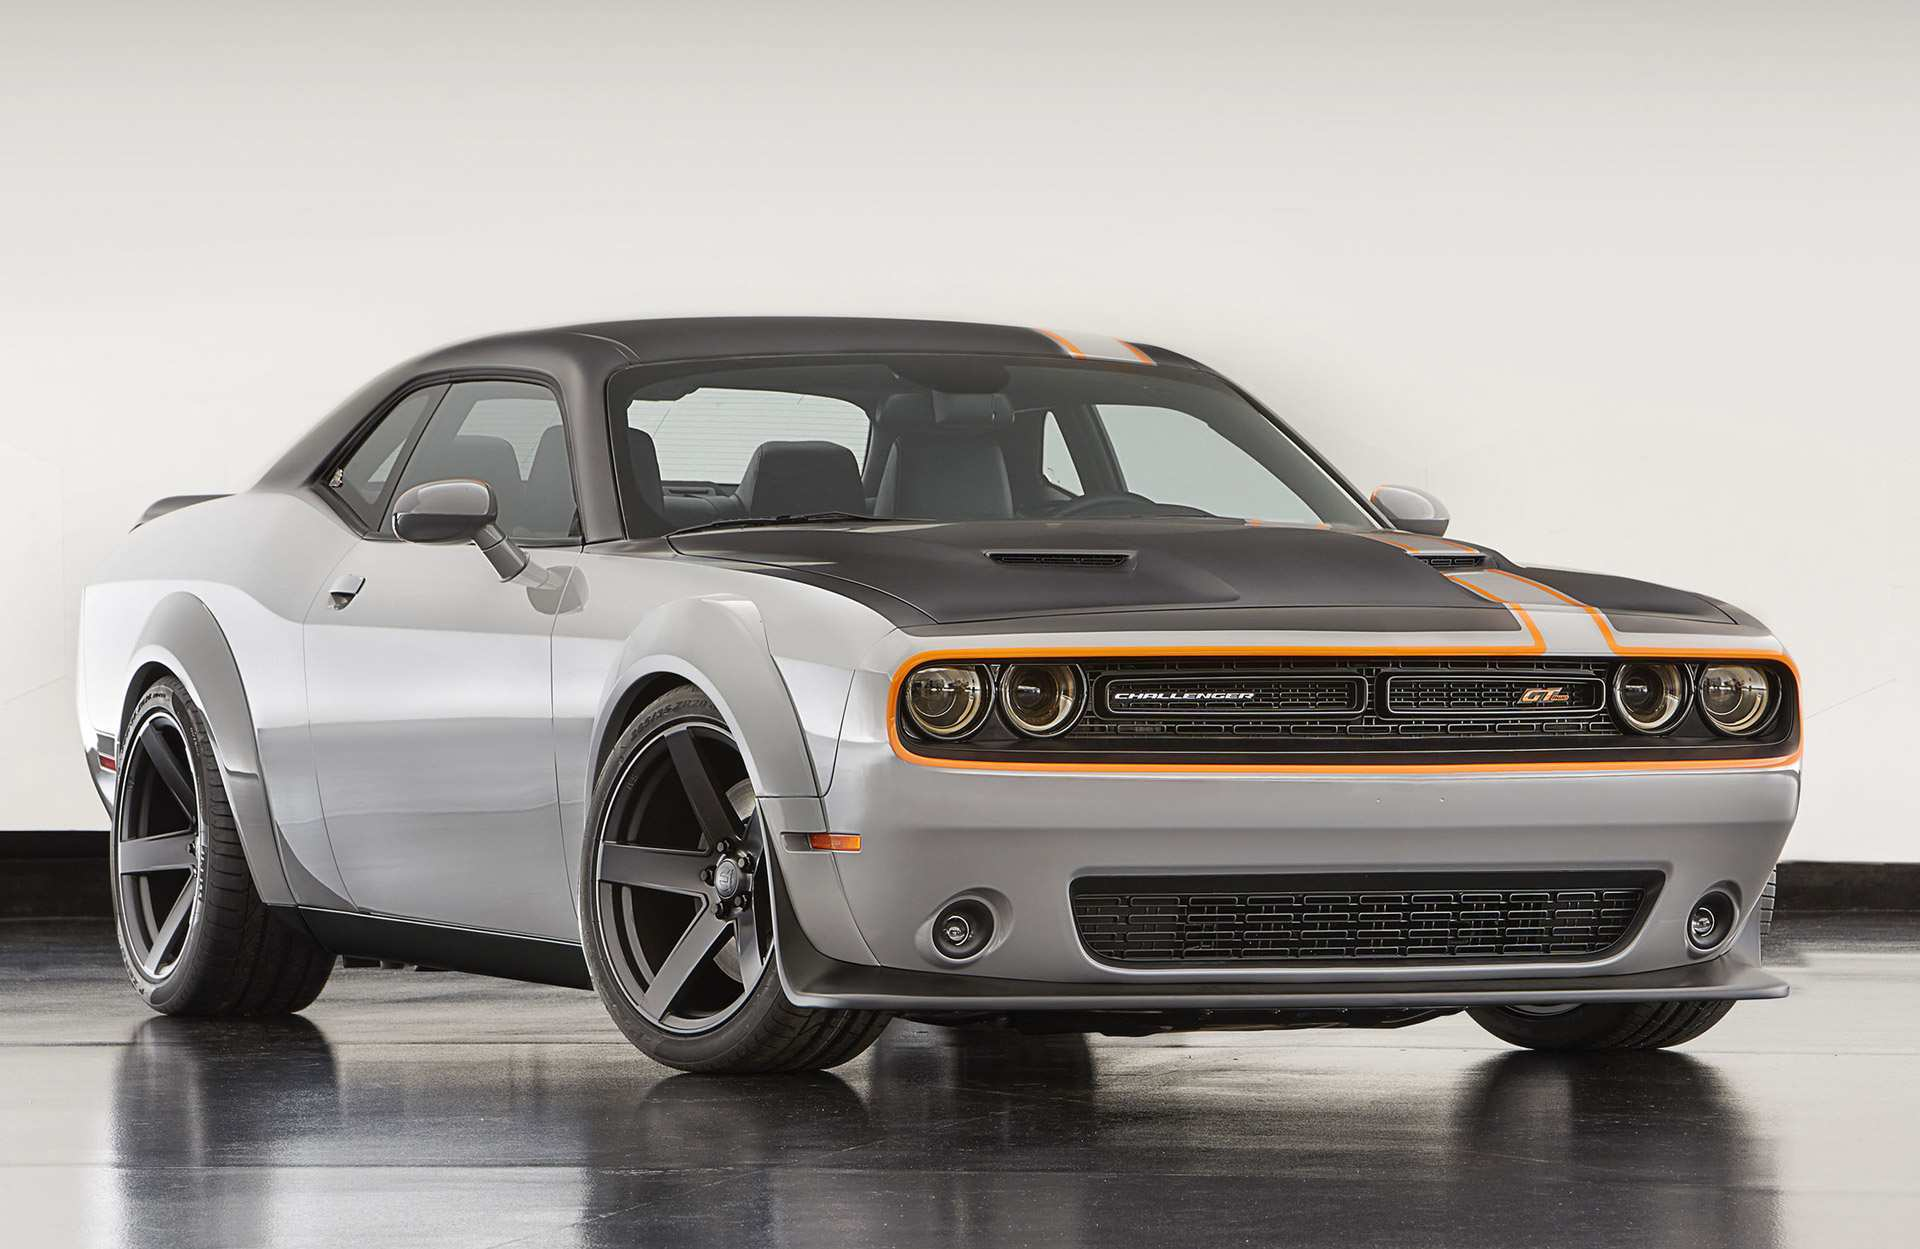 87 New 2020 Dodge Challenger Awd Prices for 2020 Dodge Challenger Awd